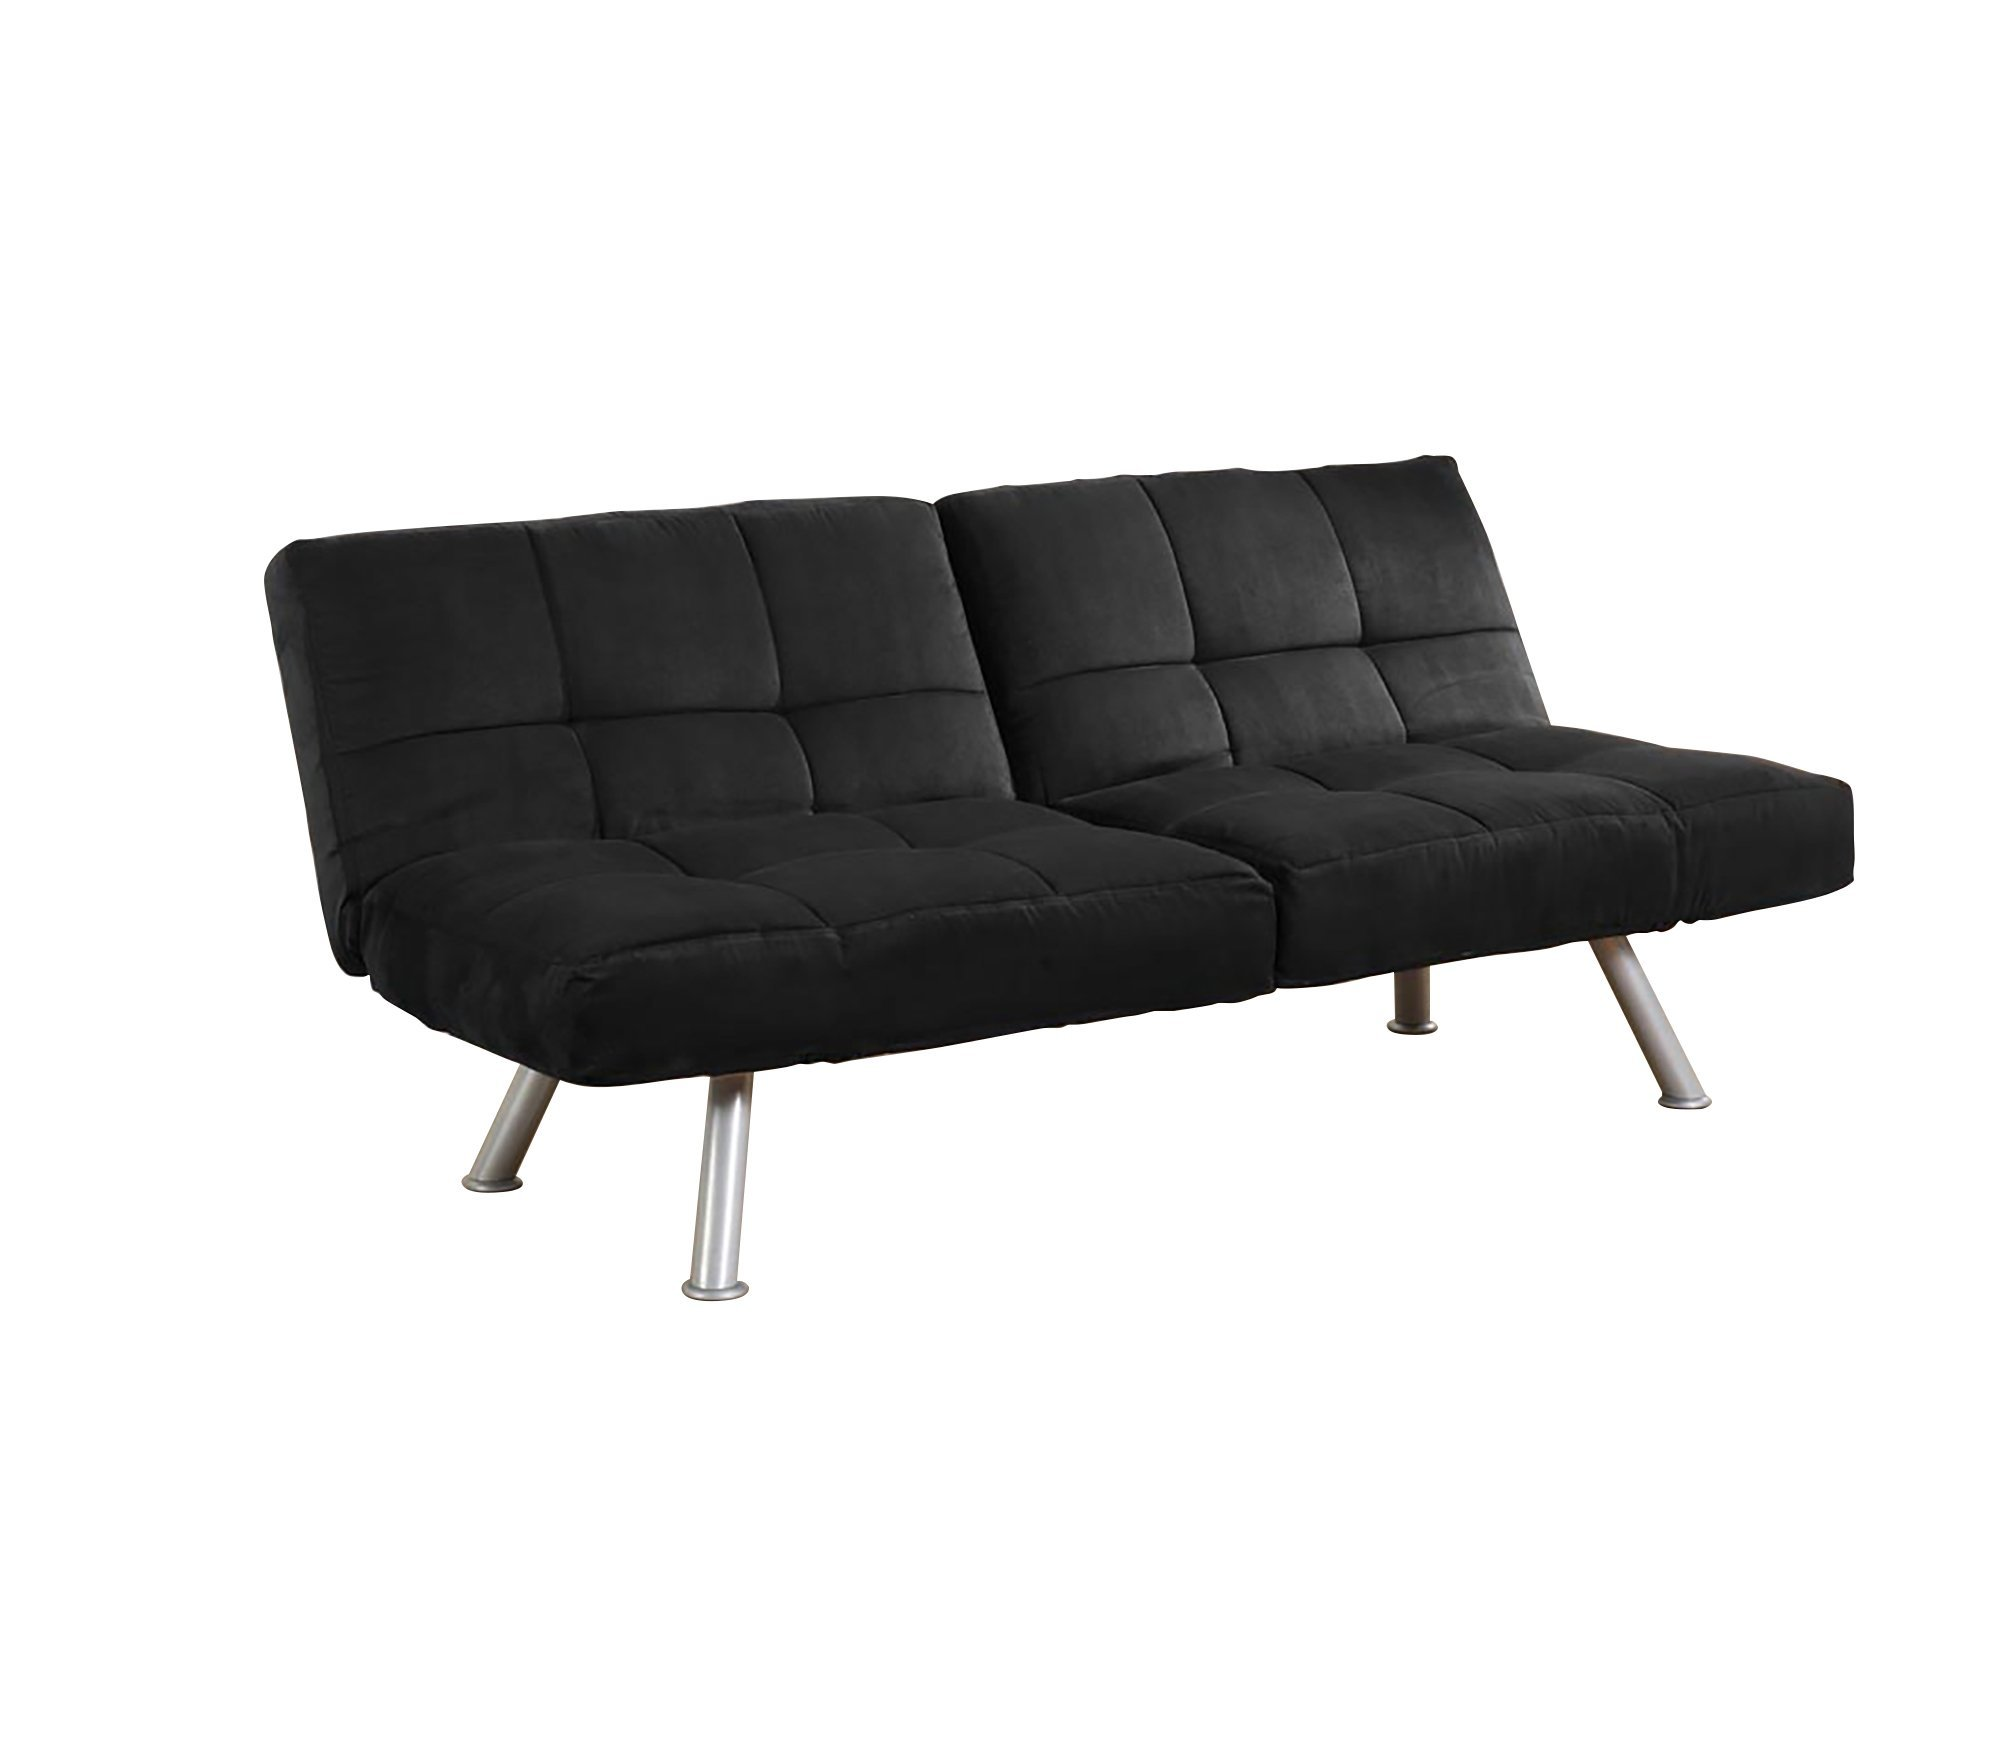 dp black delaney modern couch splitback compact home ca amazon design futon dhp kitchen leather